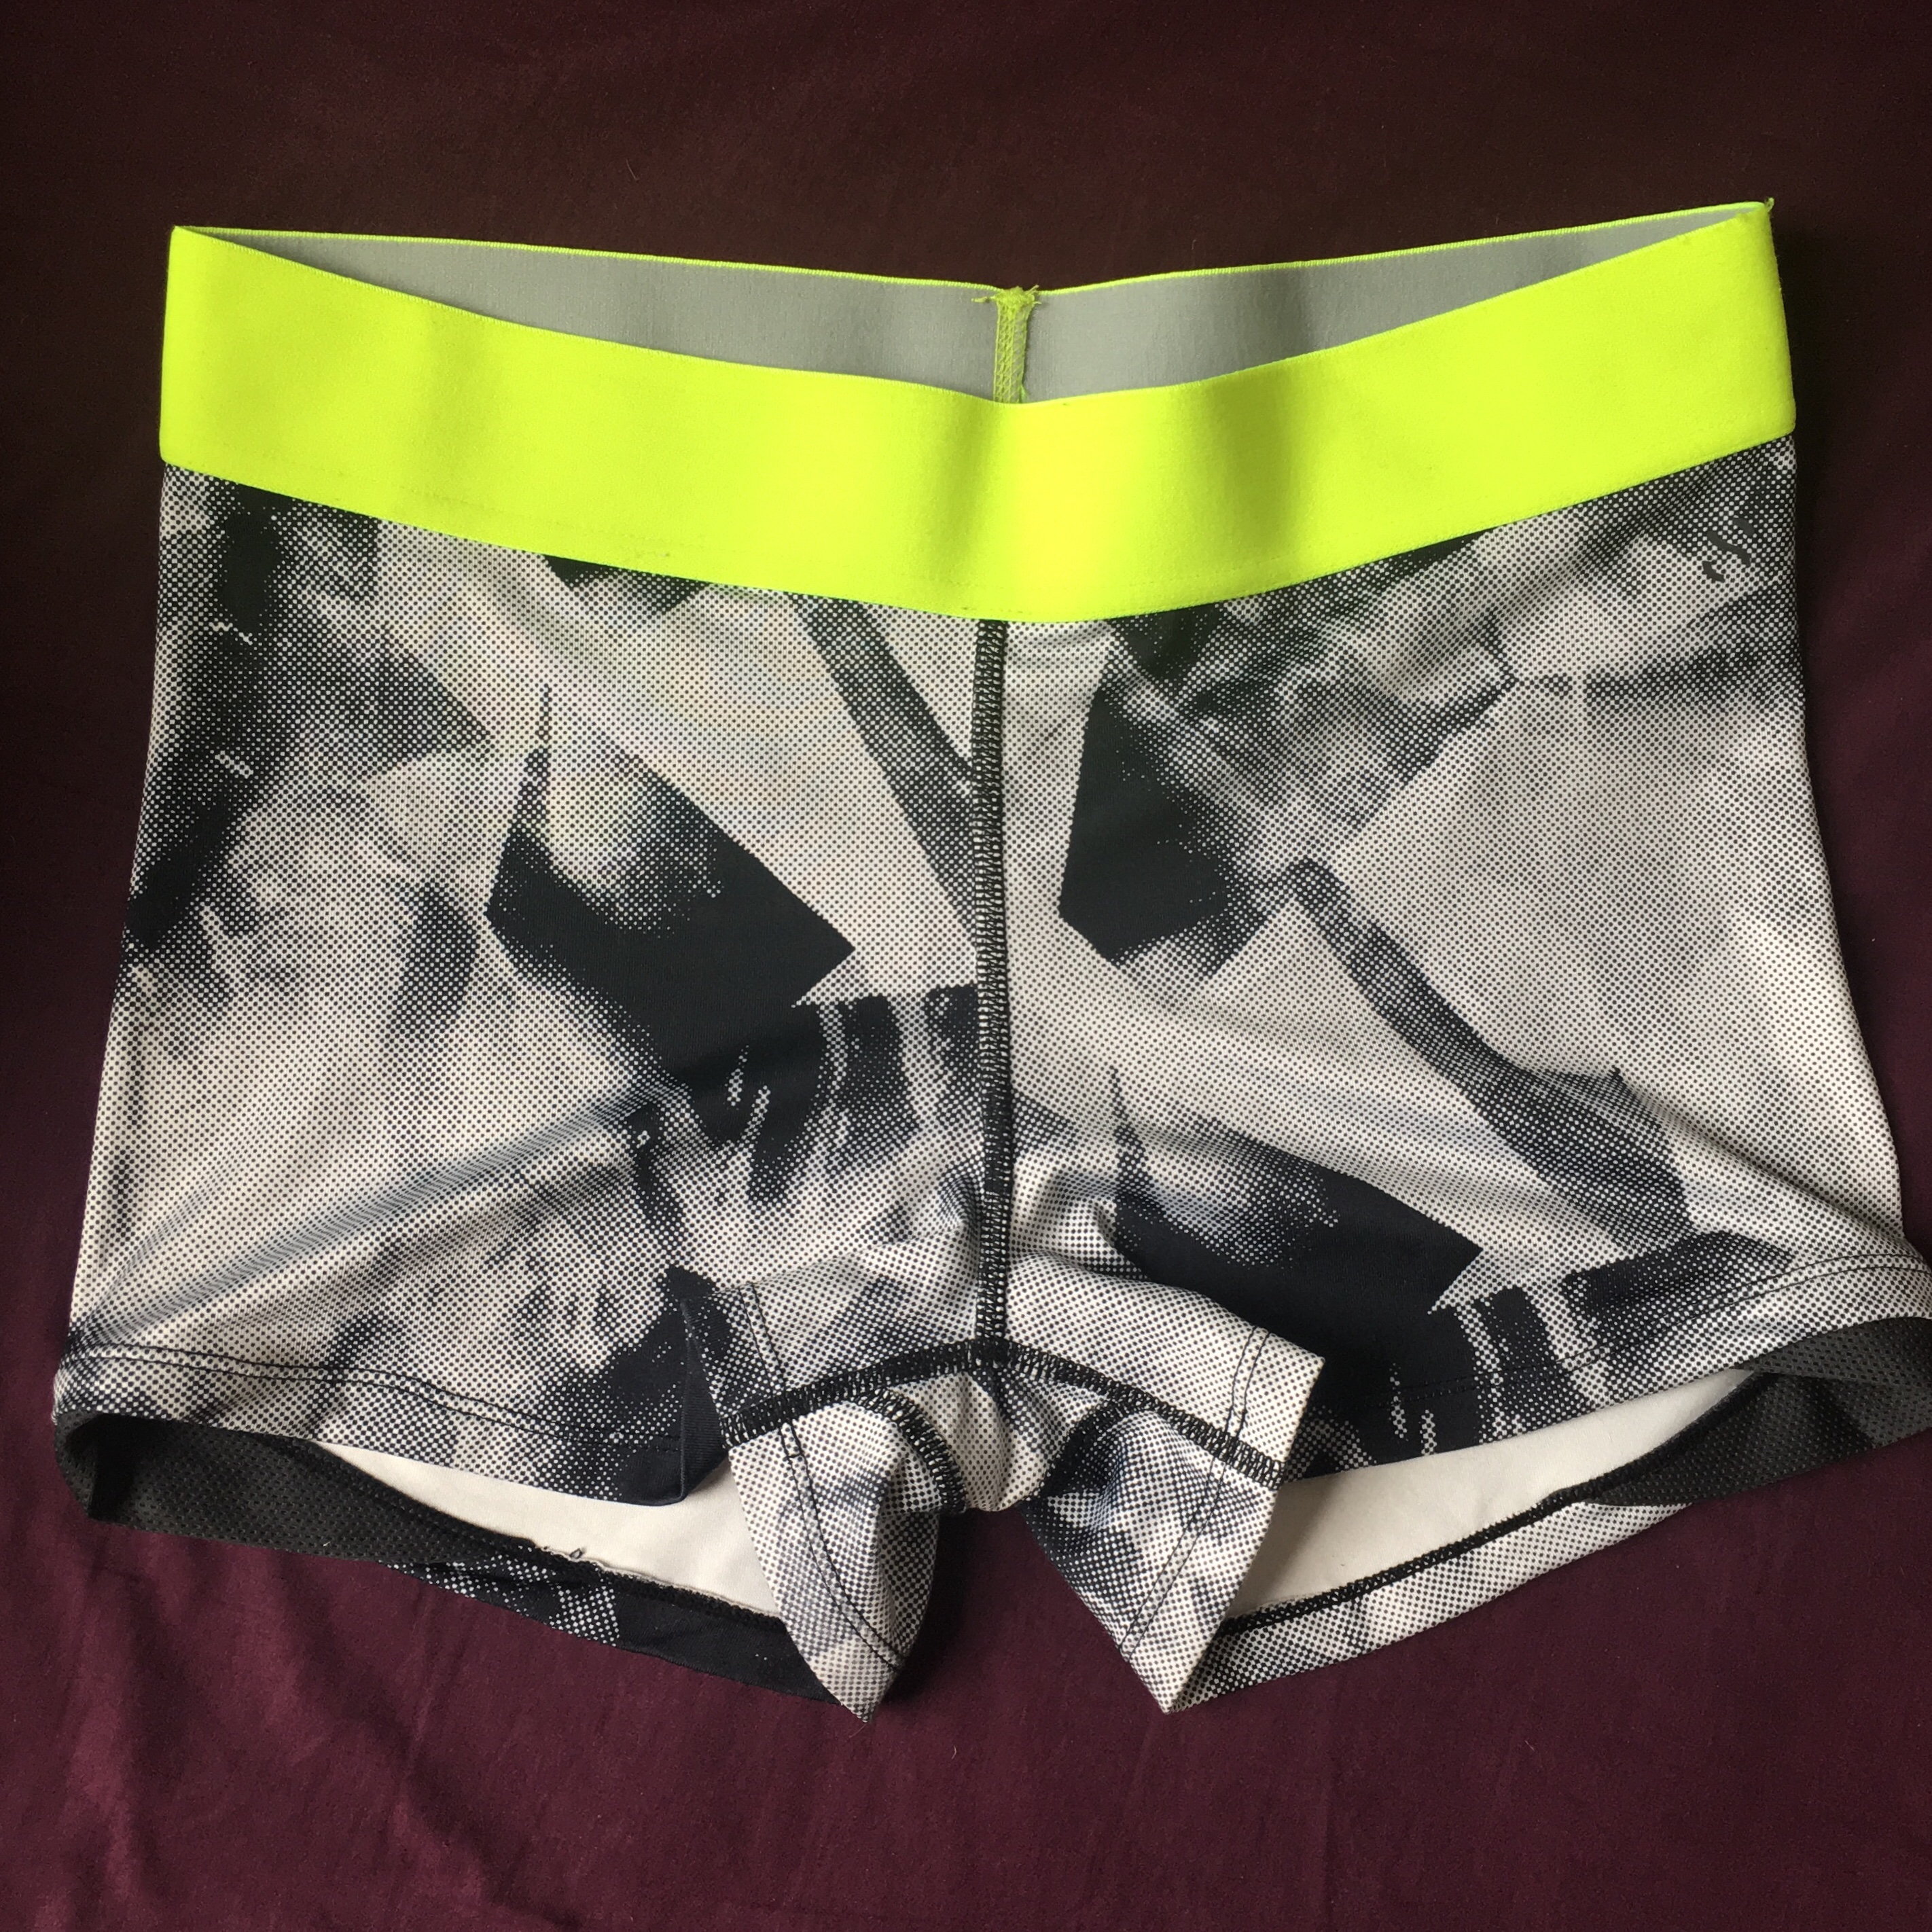 Cycling shorts mini/ short shorts! Great for running    - Depop